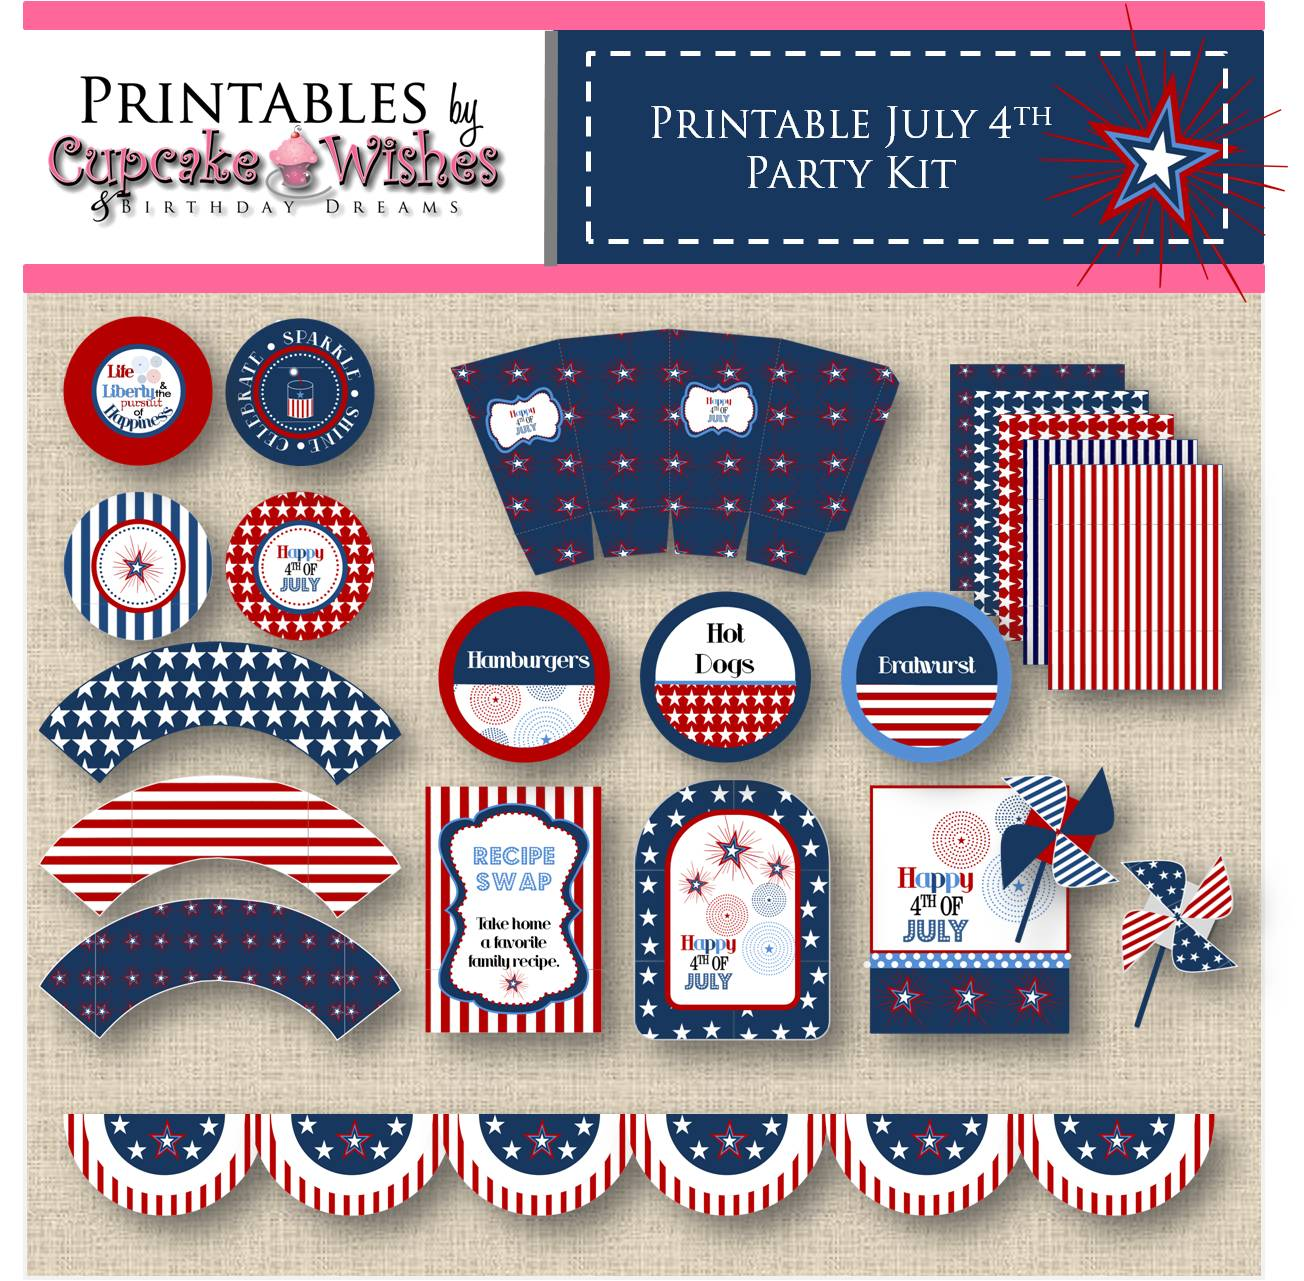 Cupcake Wishes Amp Birthday Dreams Festive July 4th Printables